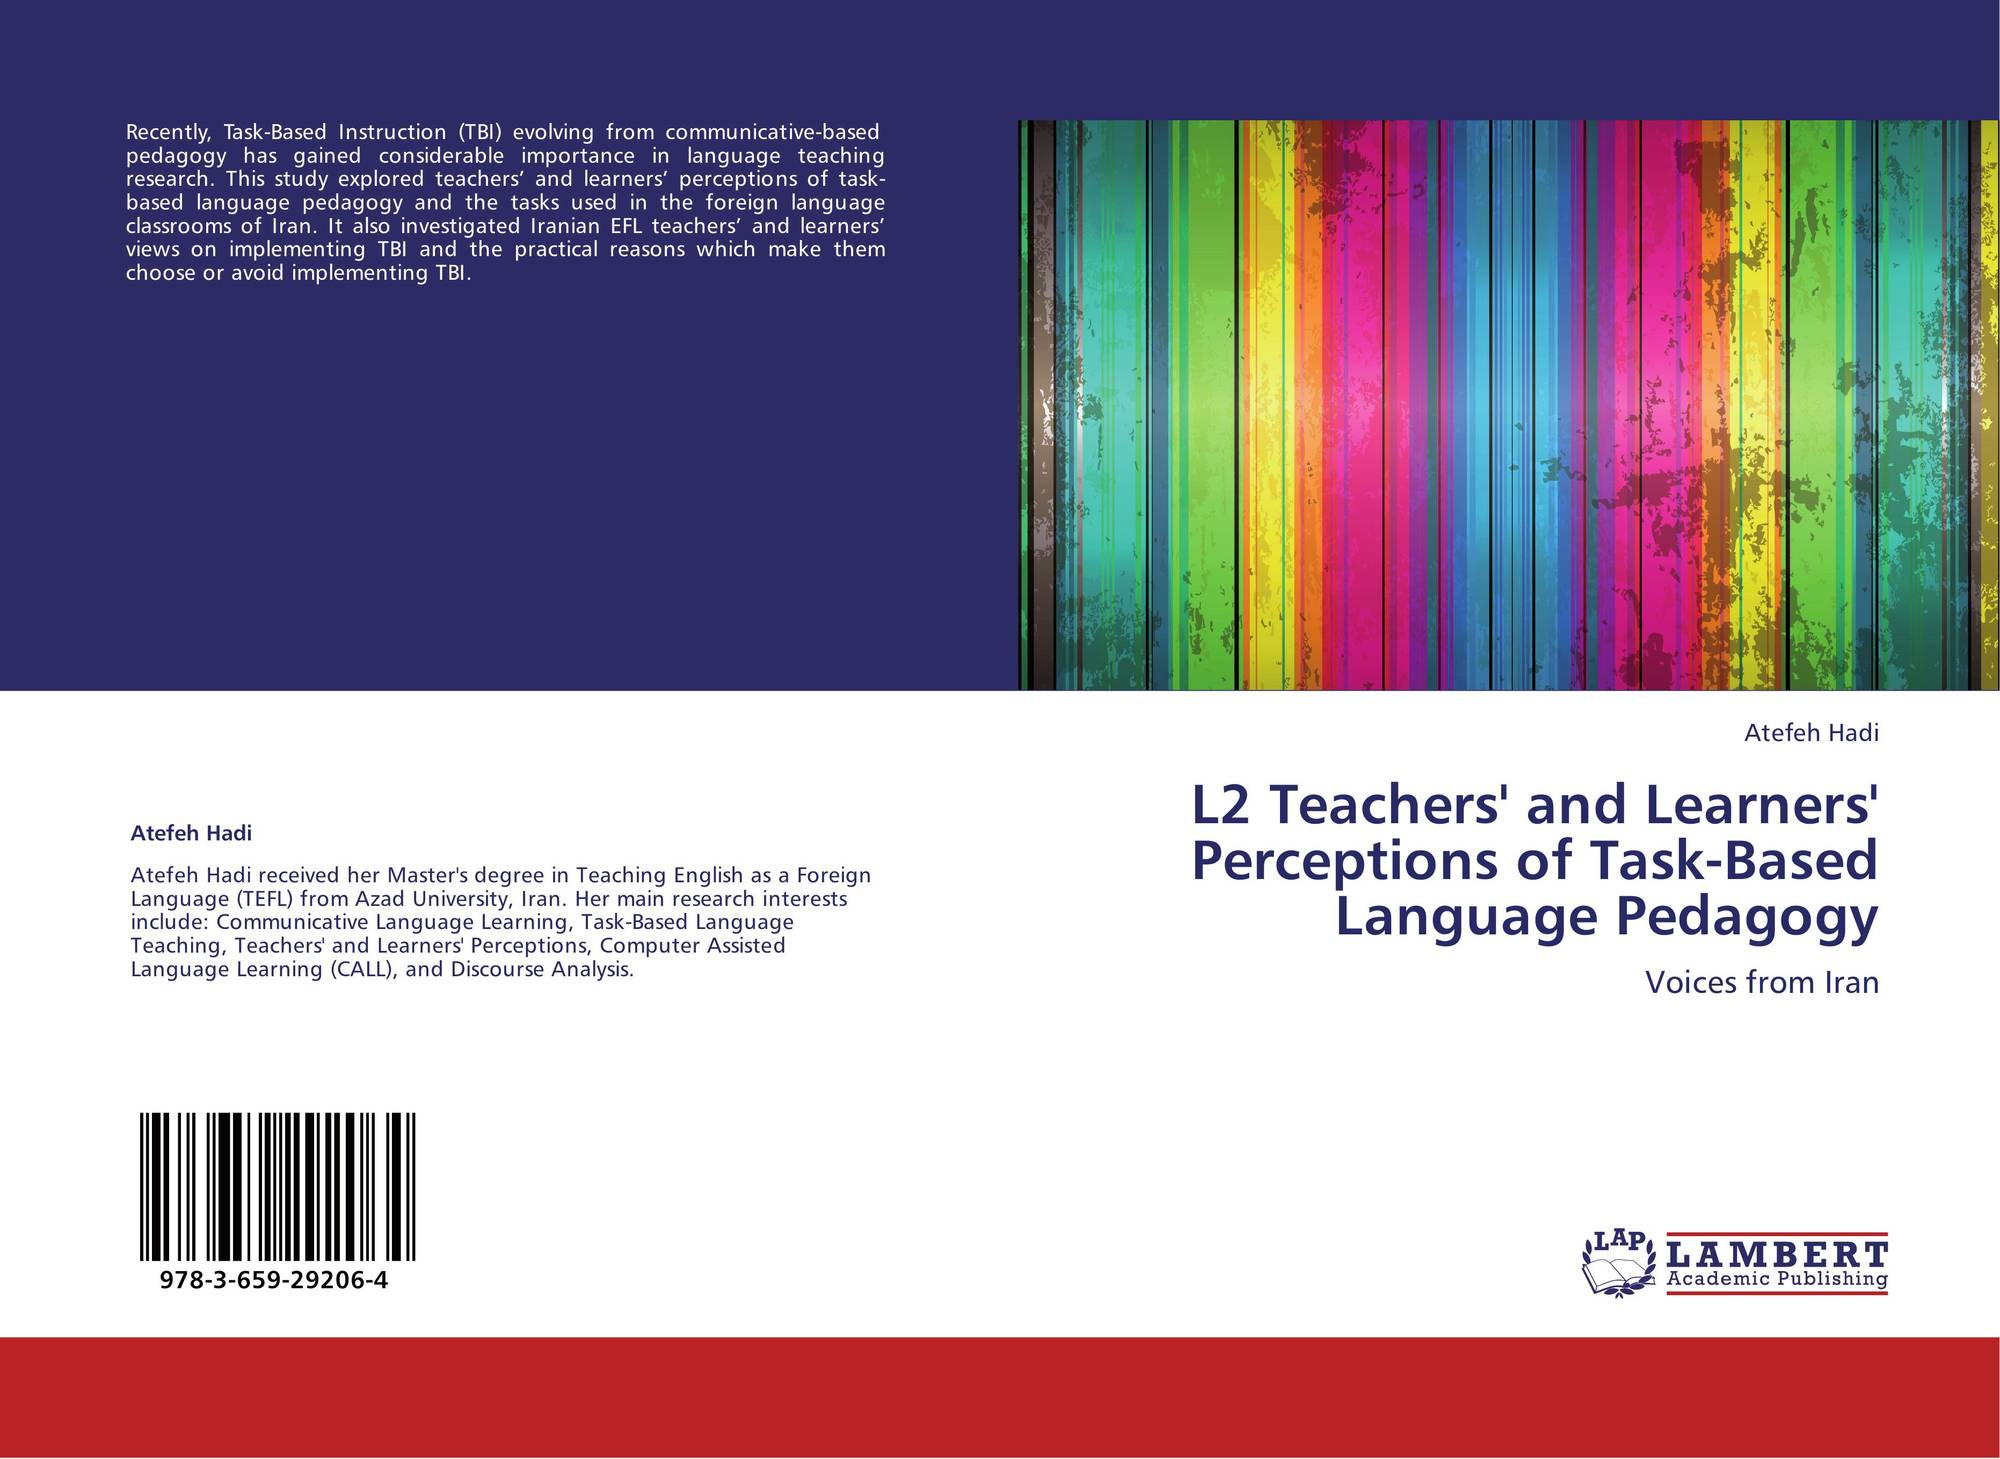 language pedagogy The edm in language education is designed to extend and diversify the professional preparation of certified teachers who seek to enhance their instructional skills and knowledge.